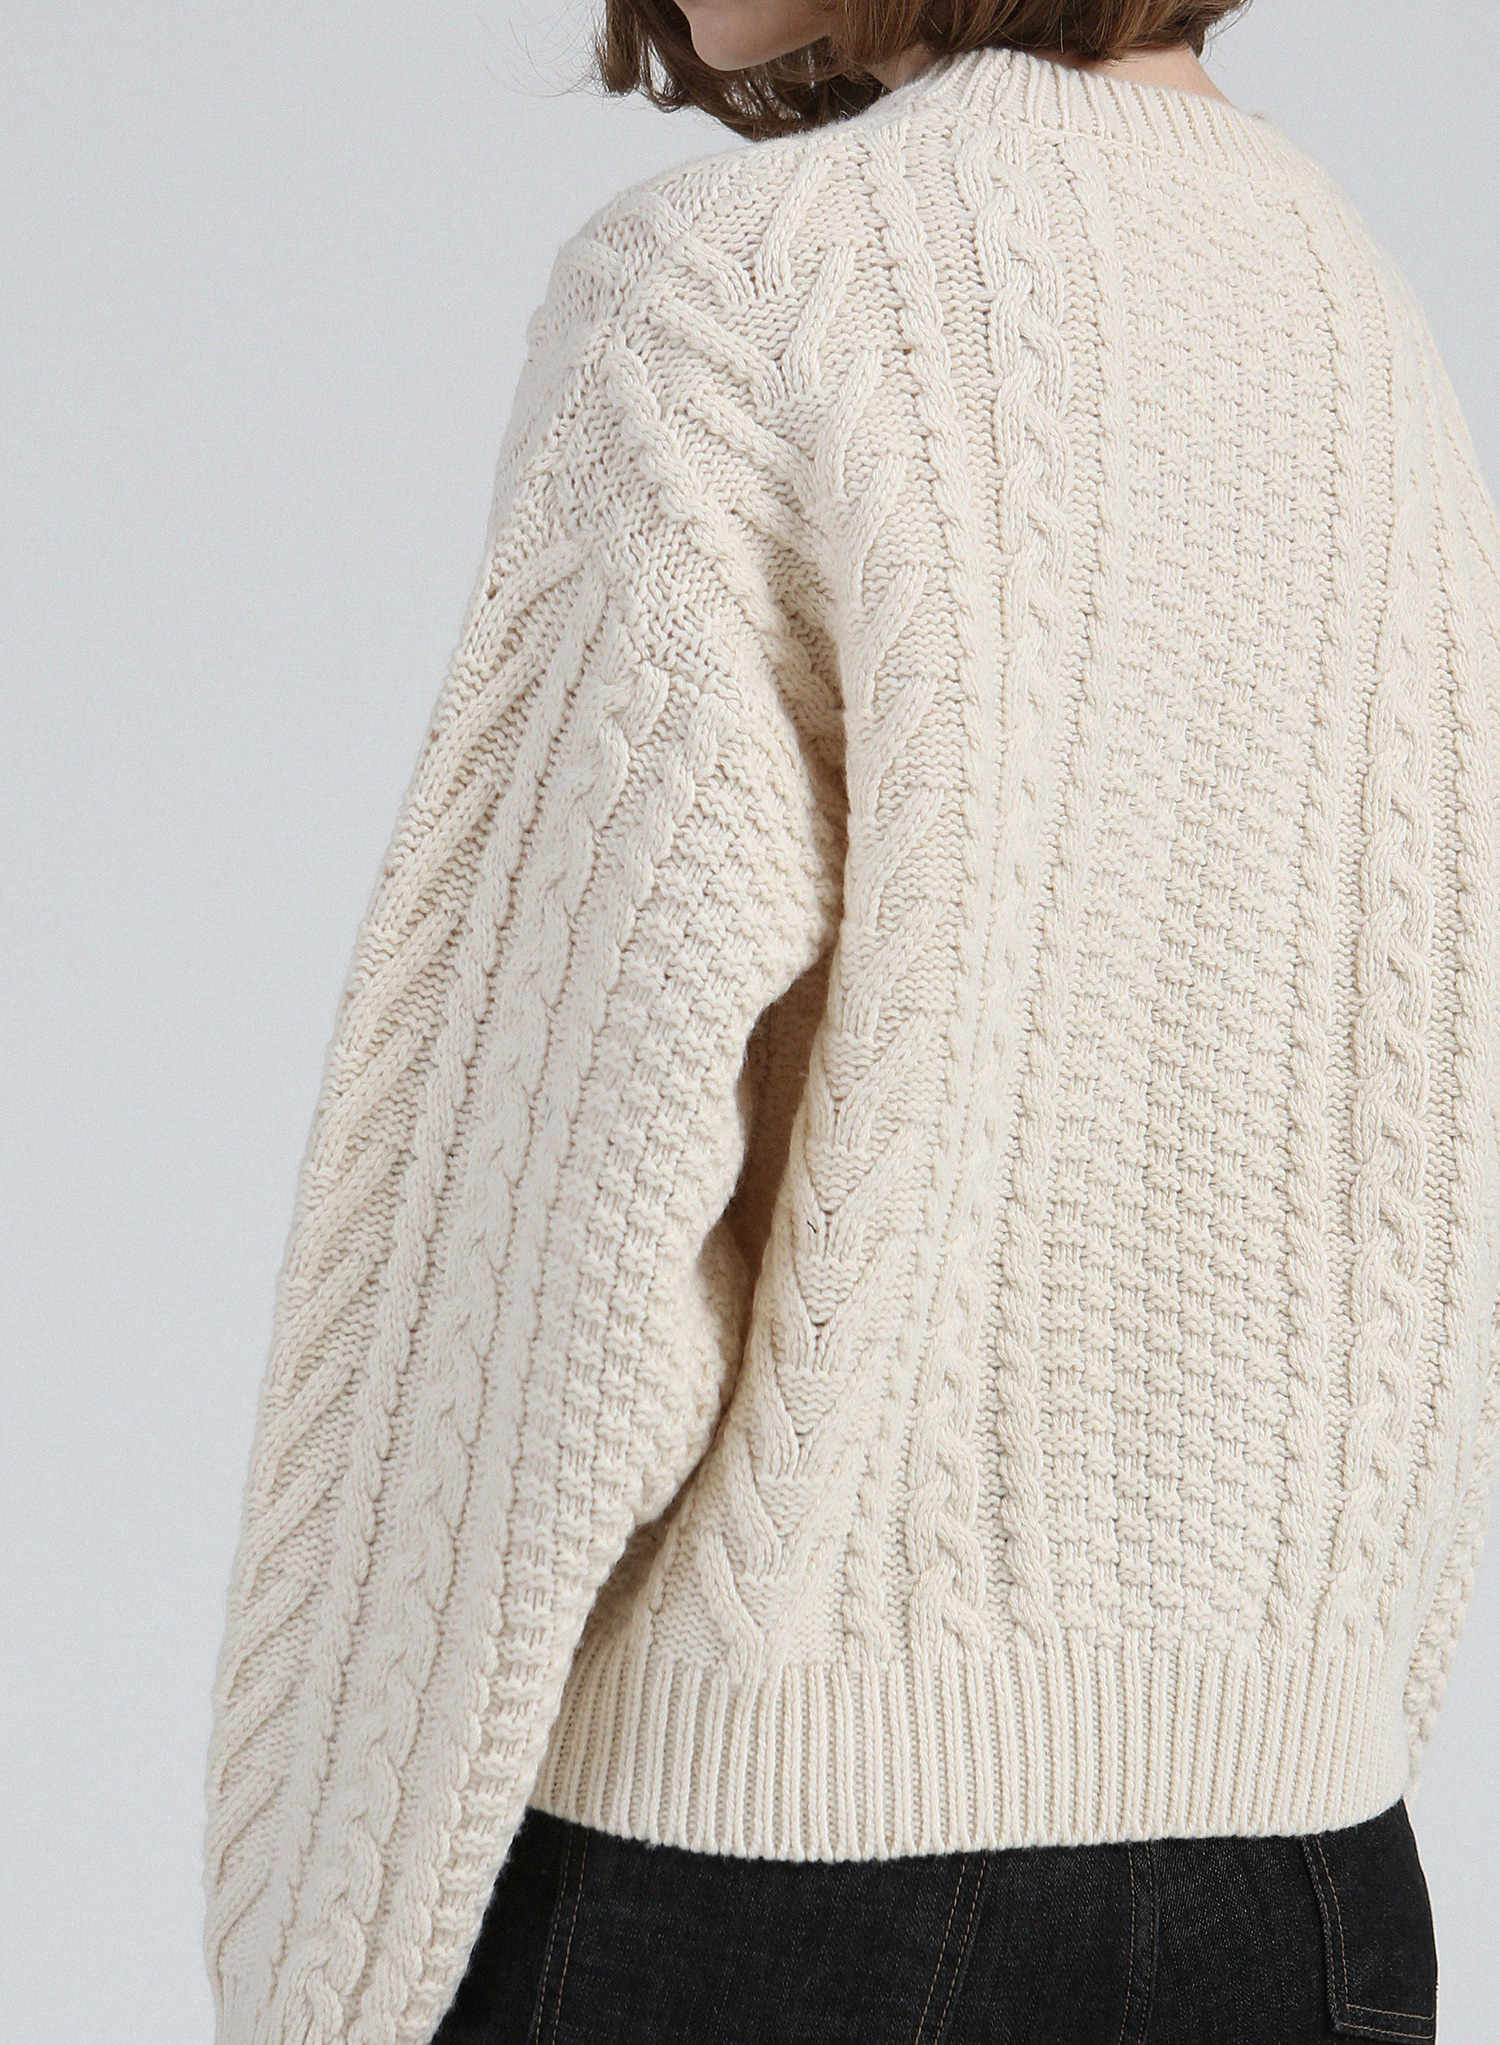 I.Twist Wool Knit